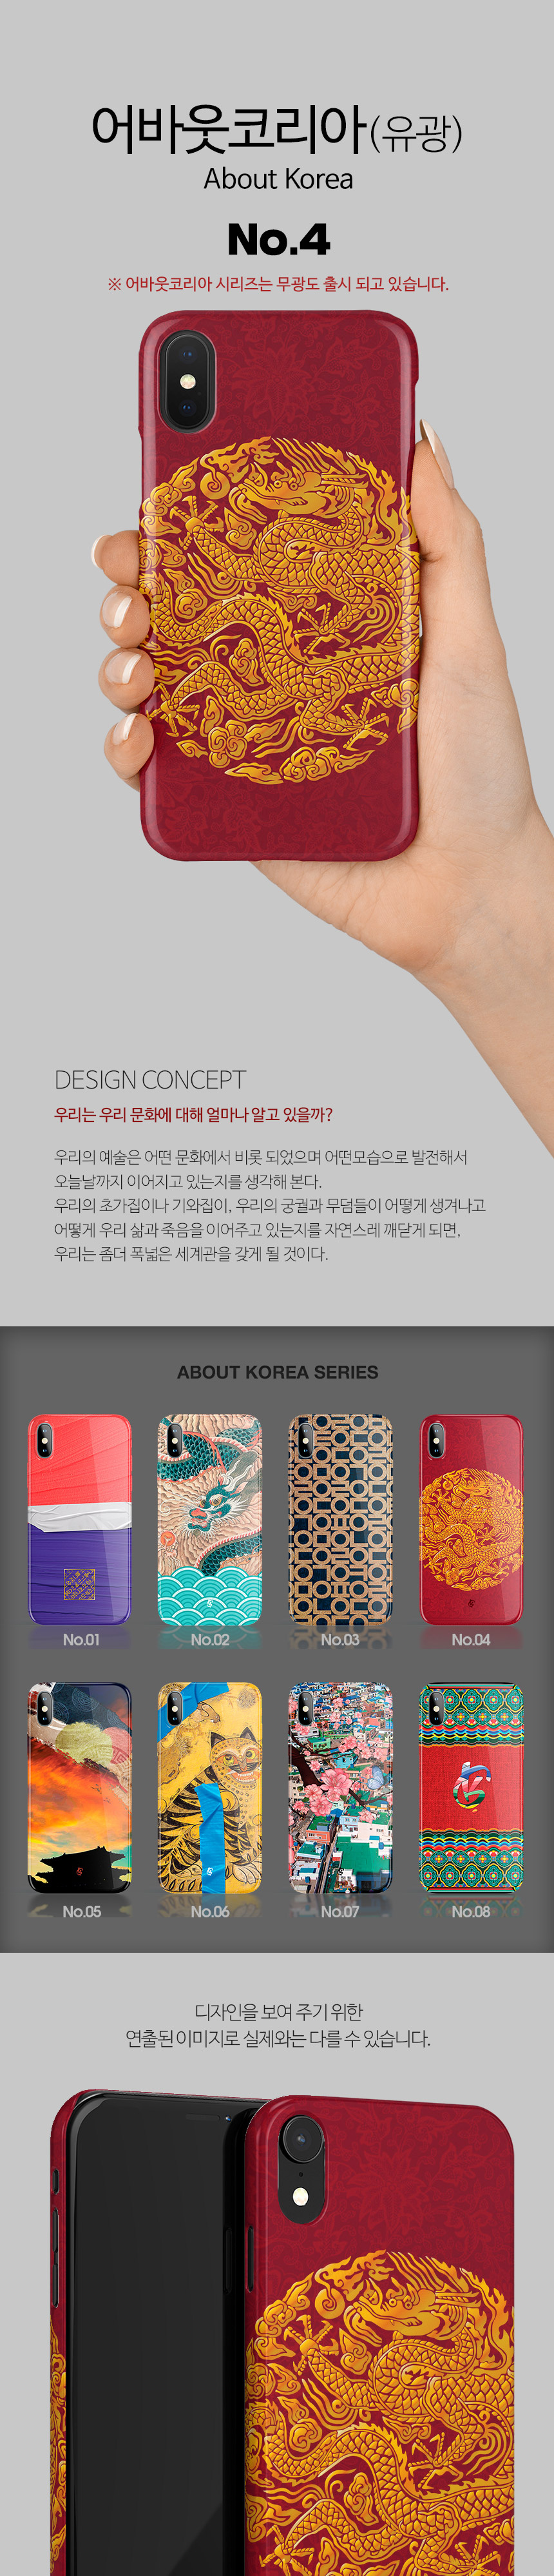 기키(GEEKY) [유광/무광] phone case About Korea No.4